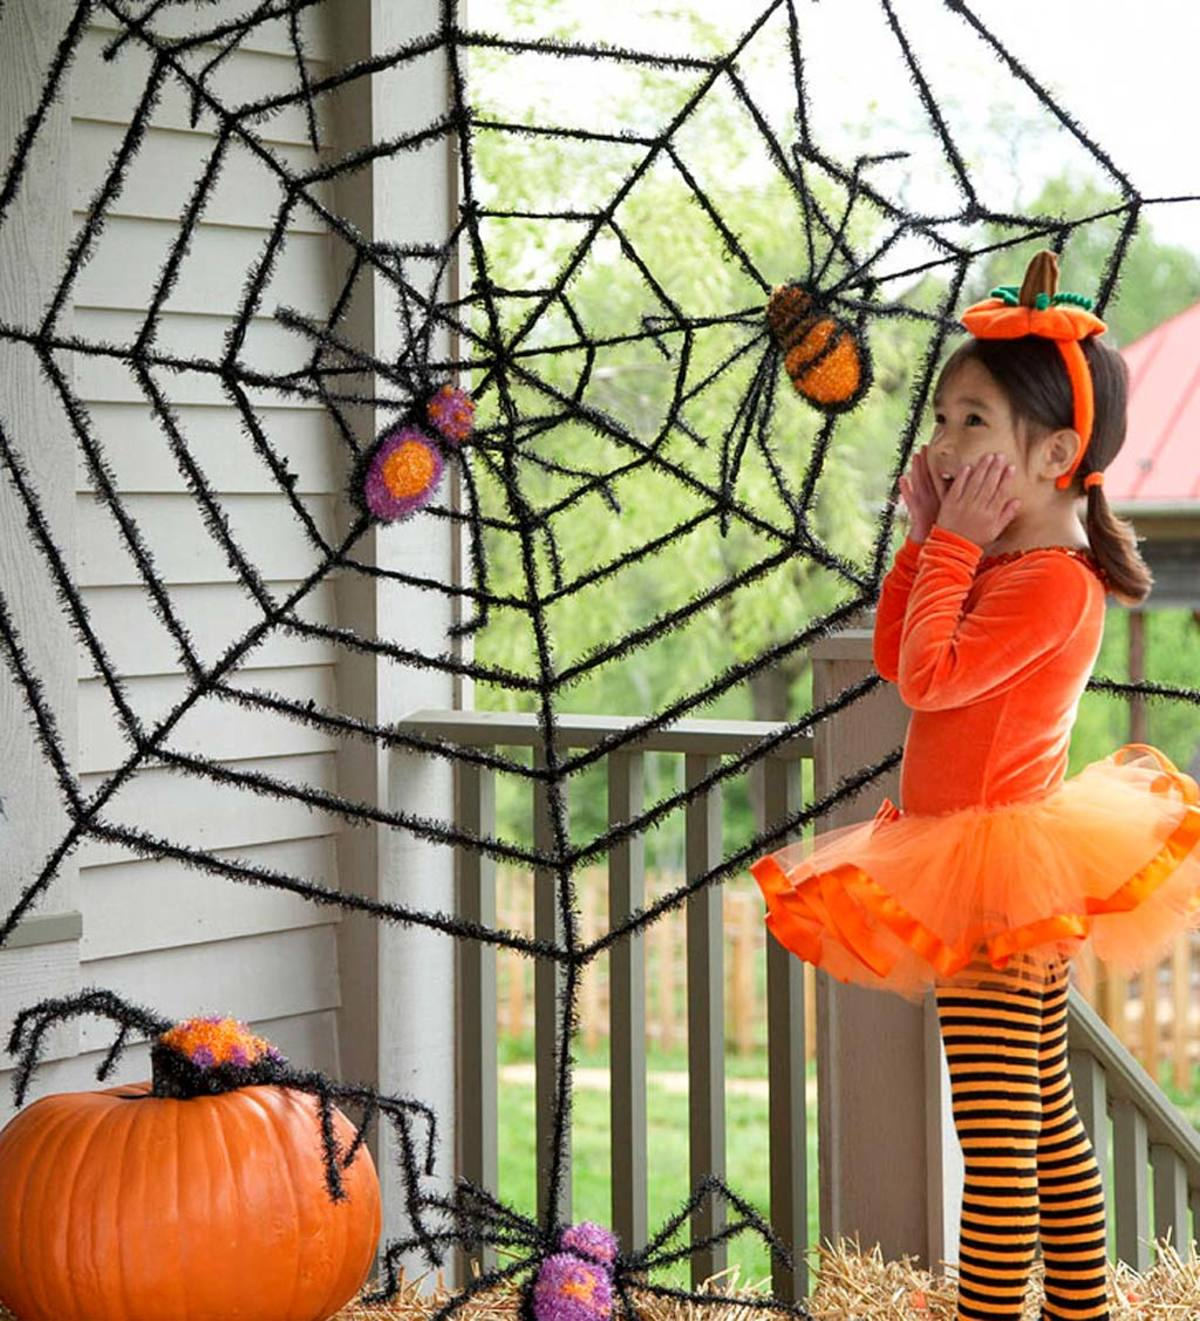 Giant Black Spider Web with Two Spiders Halloween Decoration